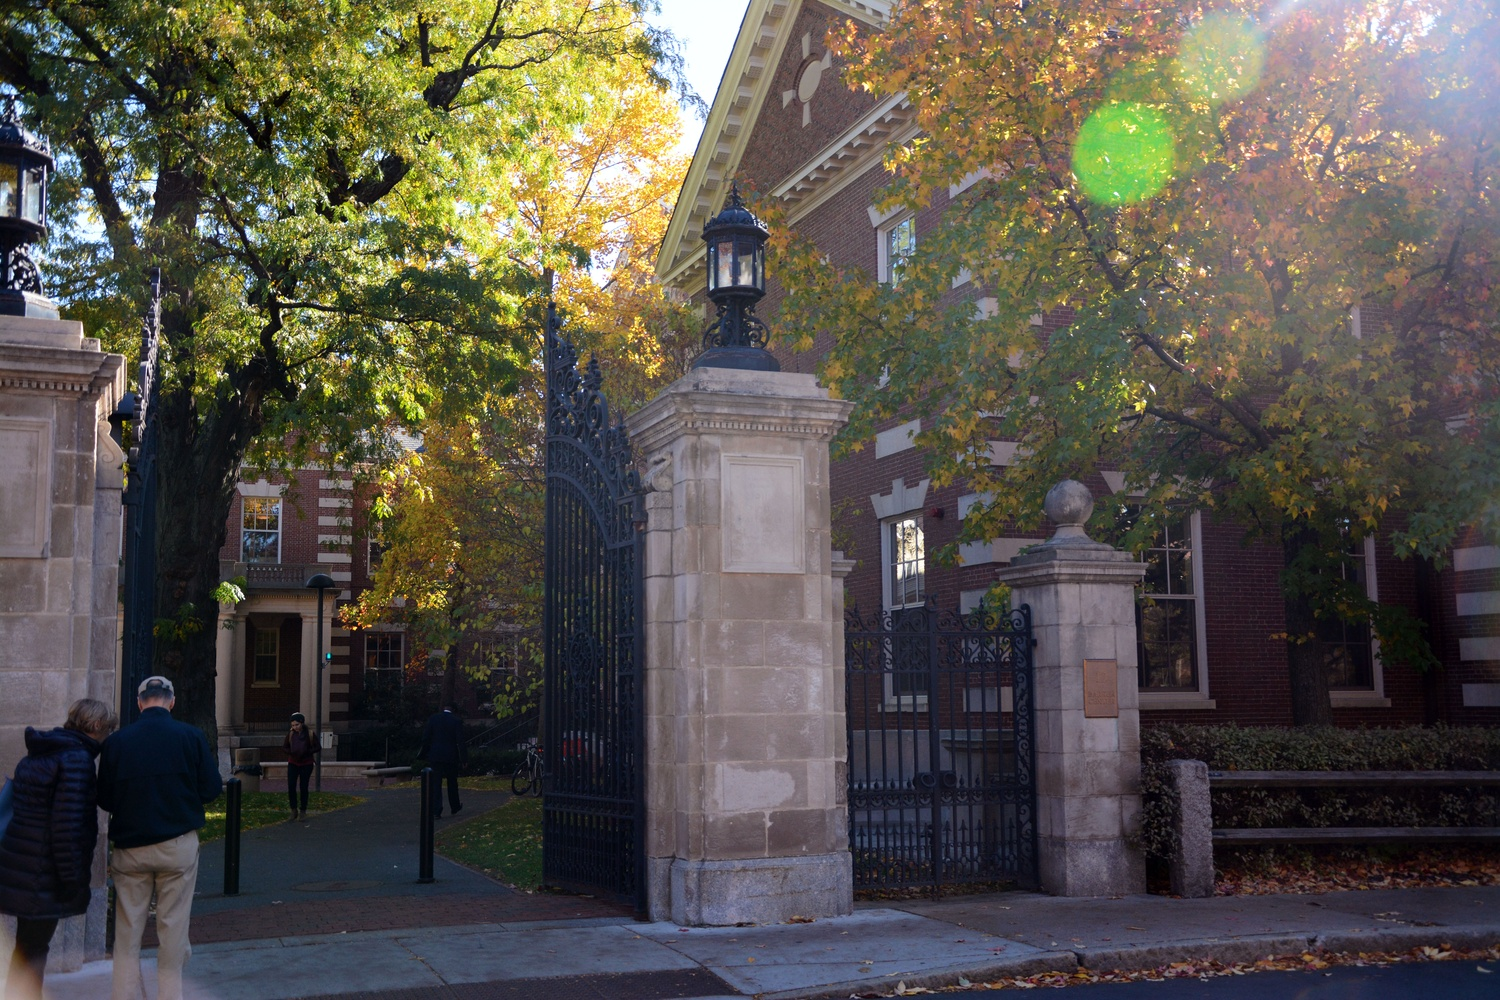 Located across the street from the Lamont Gate, the Barker Center is home to the Harvard Center for the Humanities.